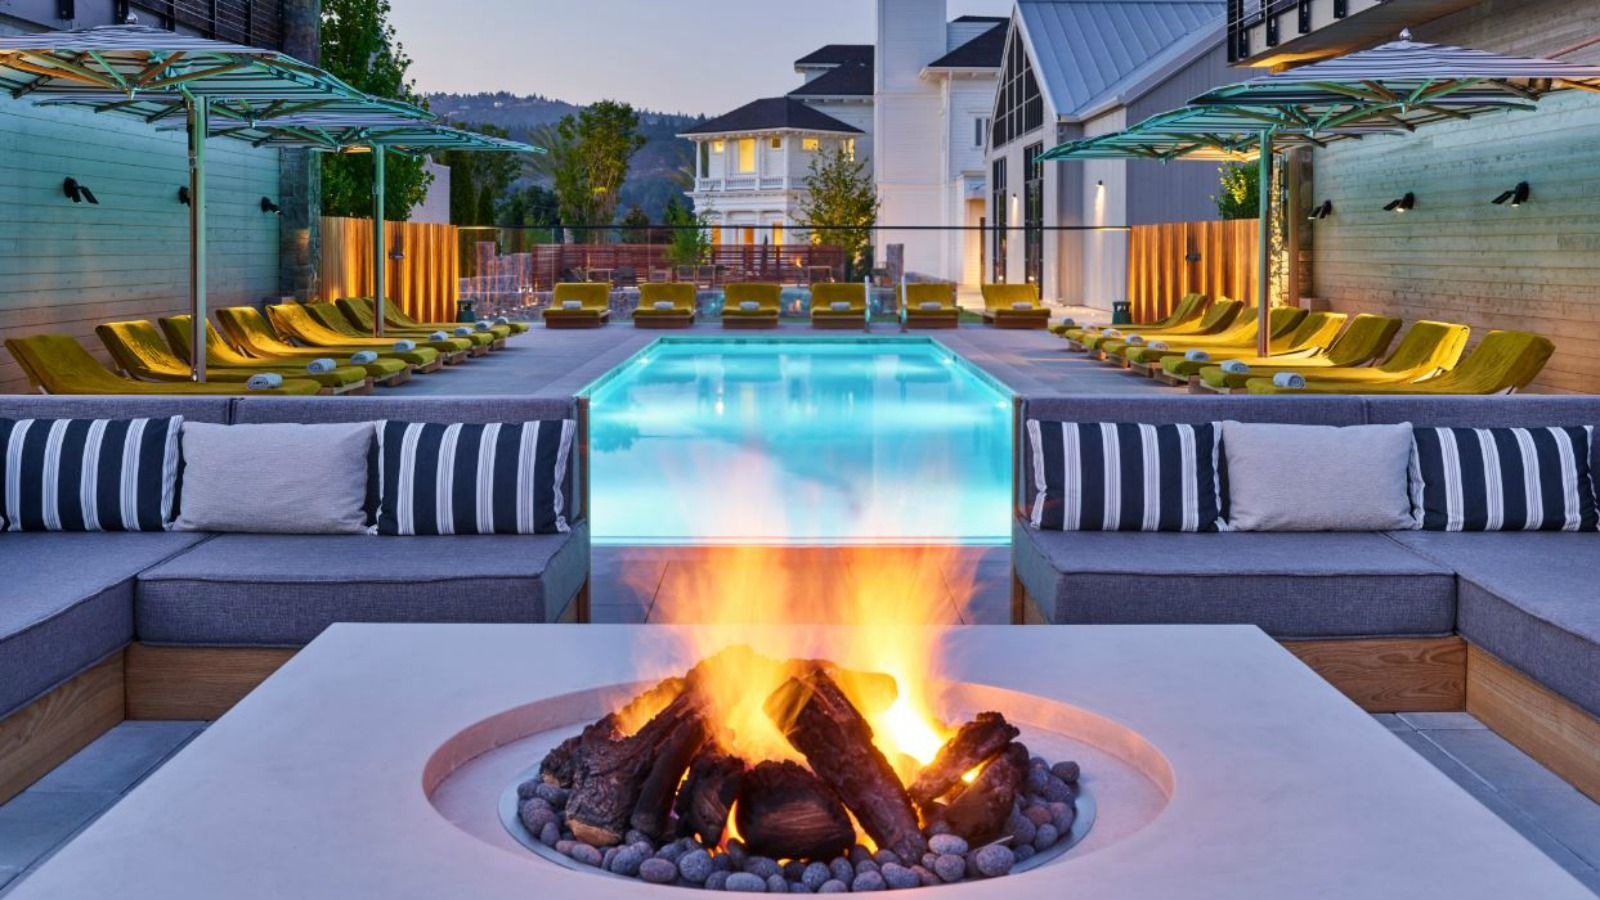 Features and Amenities at Las Alcobas, A Luxury Collection Hotel, Napa Valley - Fire Pit Lounge at Dusk